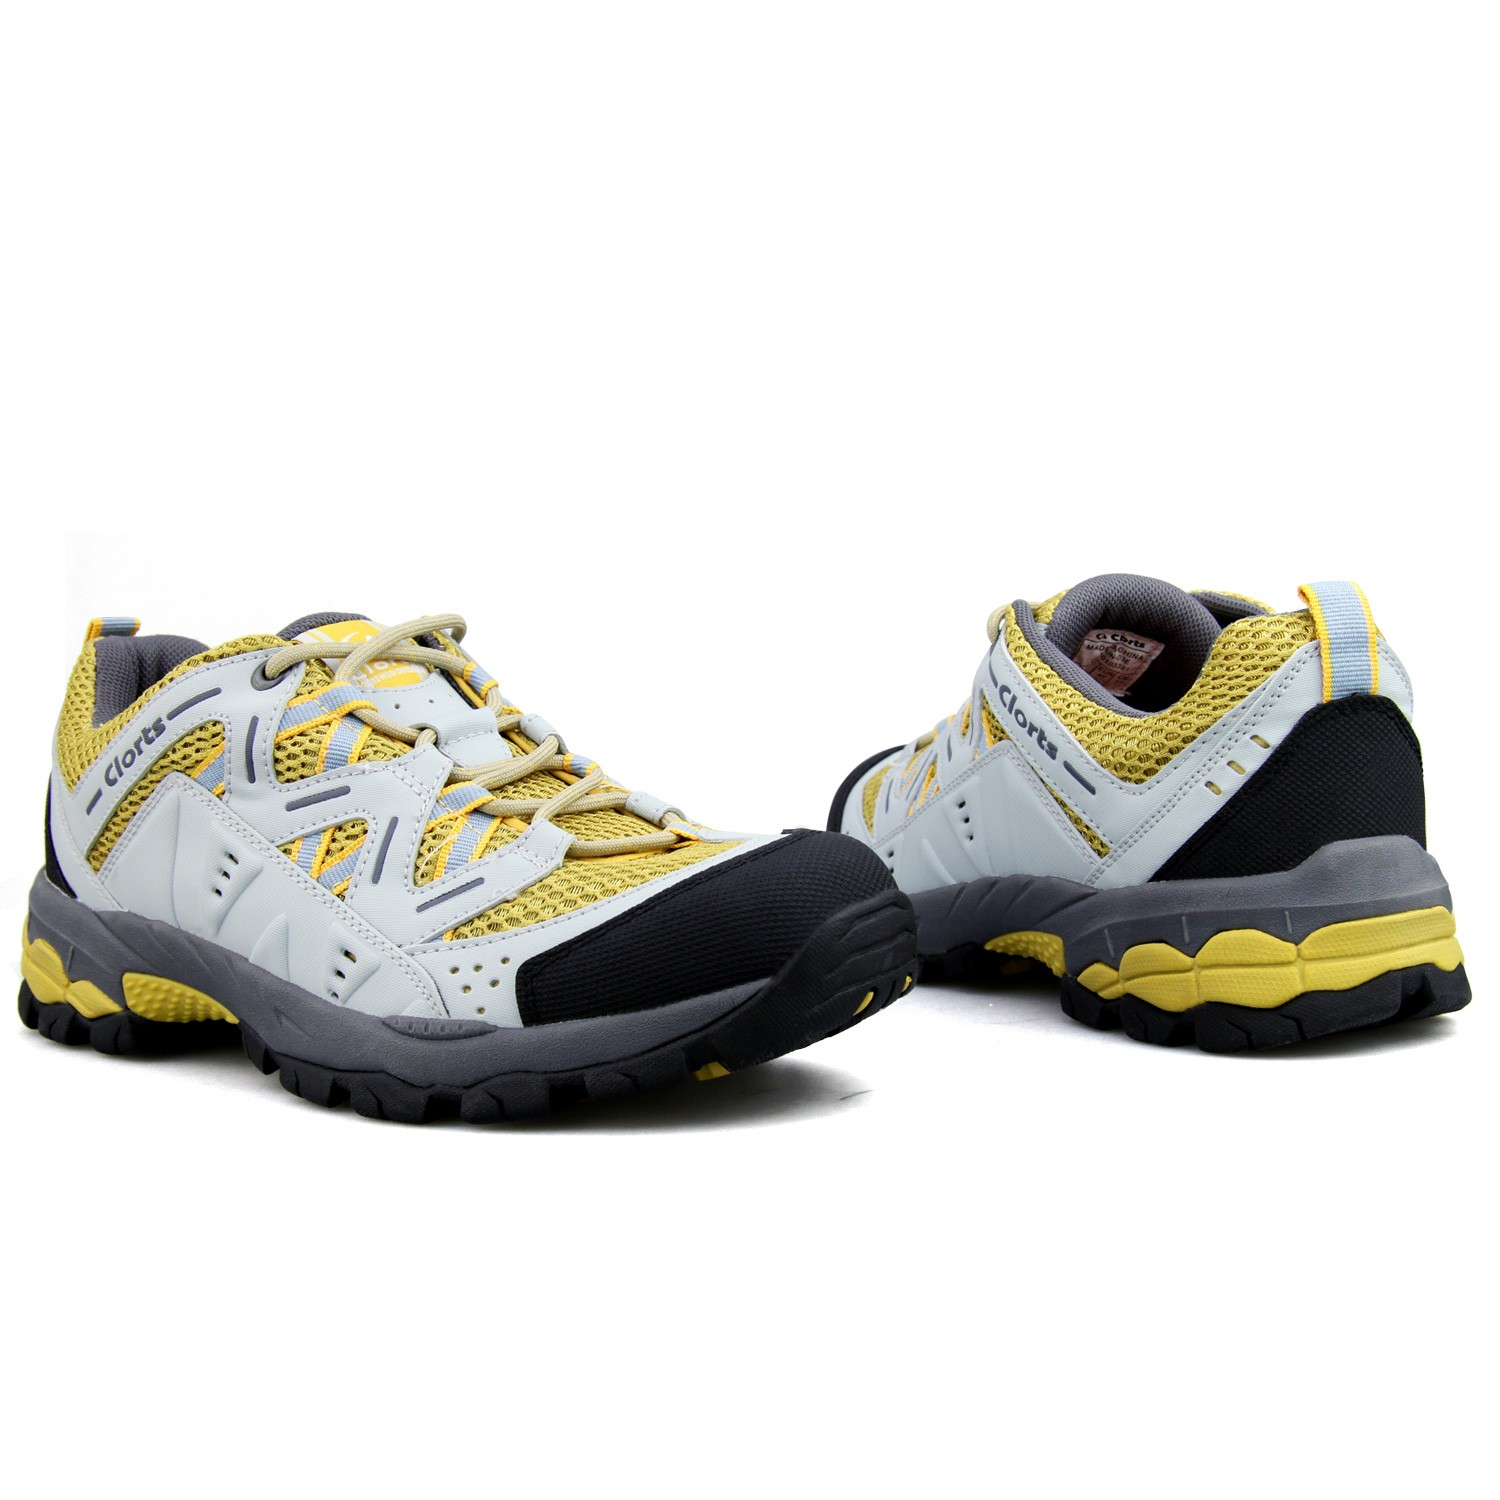 Mens Trail Running Sneakers Manufacturers, Mens Trail Running Sneakers Factory, Supply Mens Trail Running Sneakers